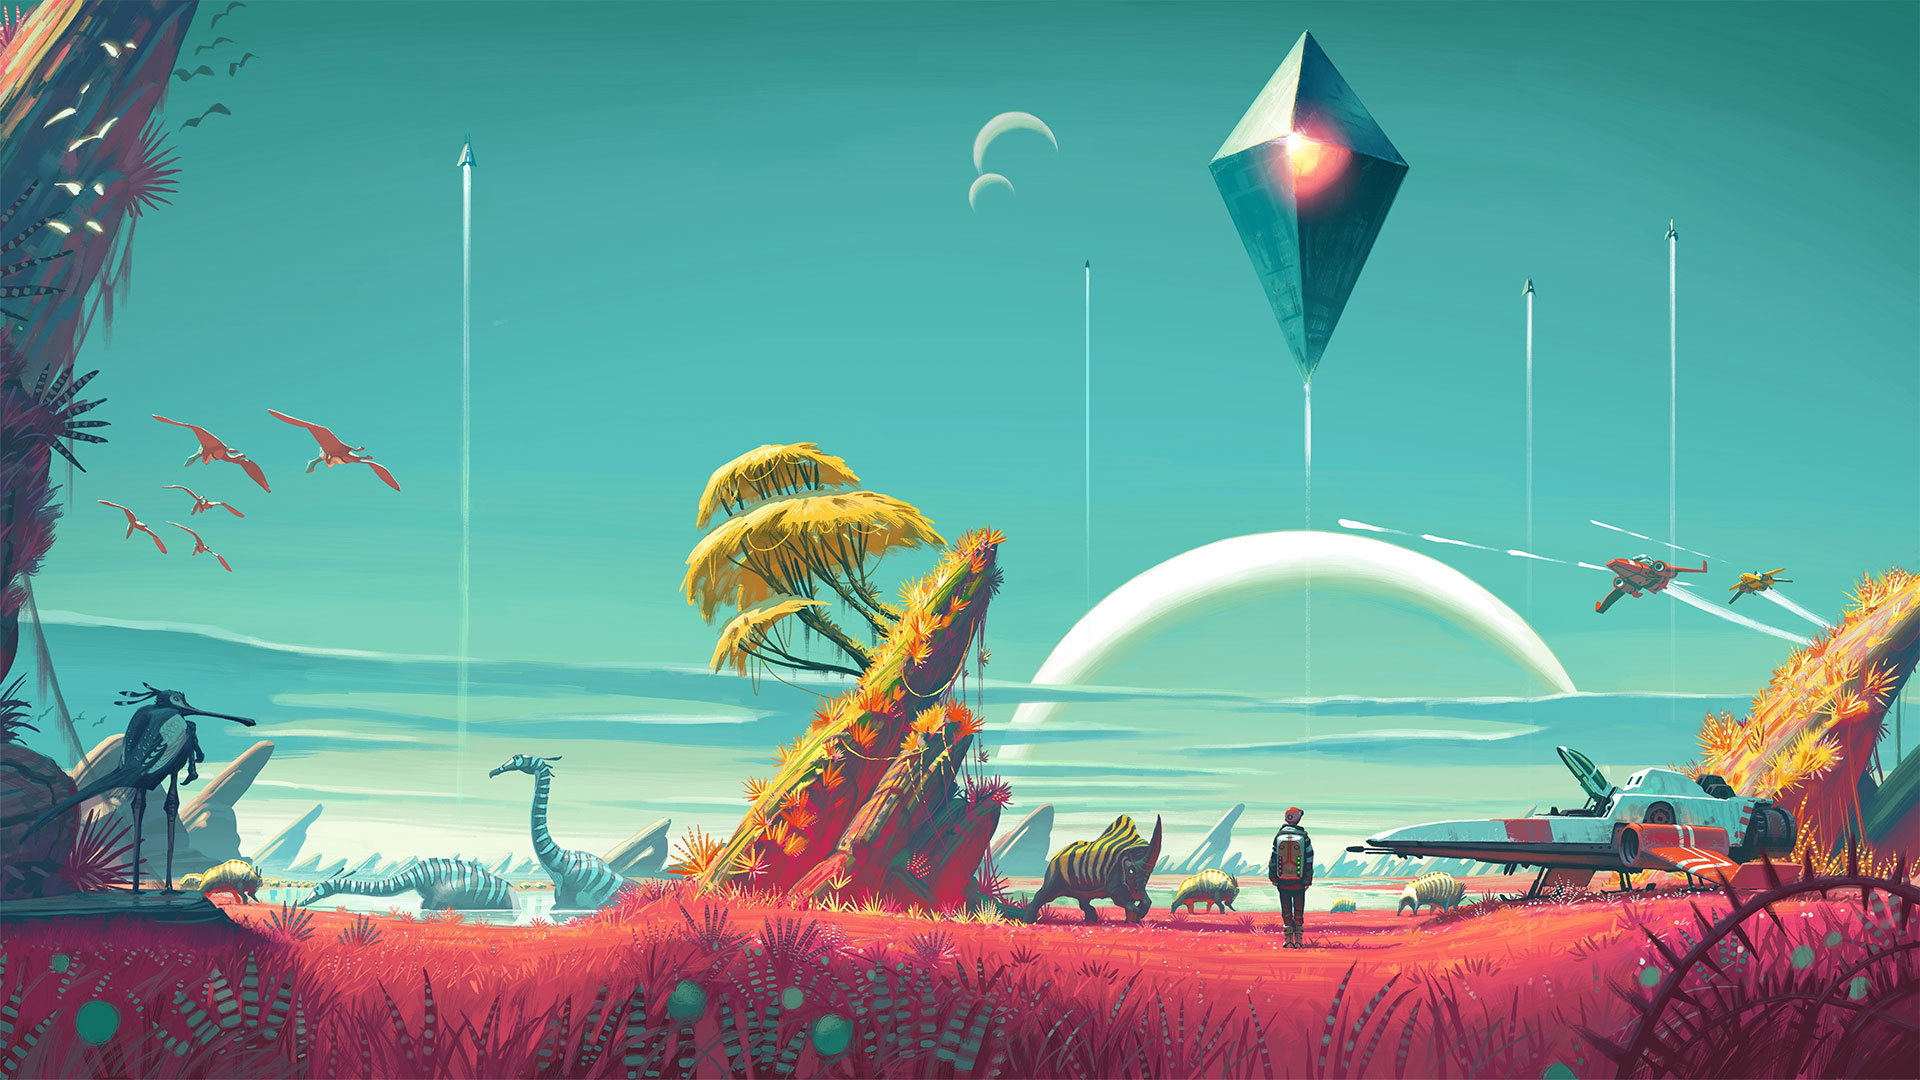 no man's sky wallpapers in ultra hd | 4k